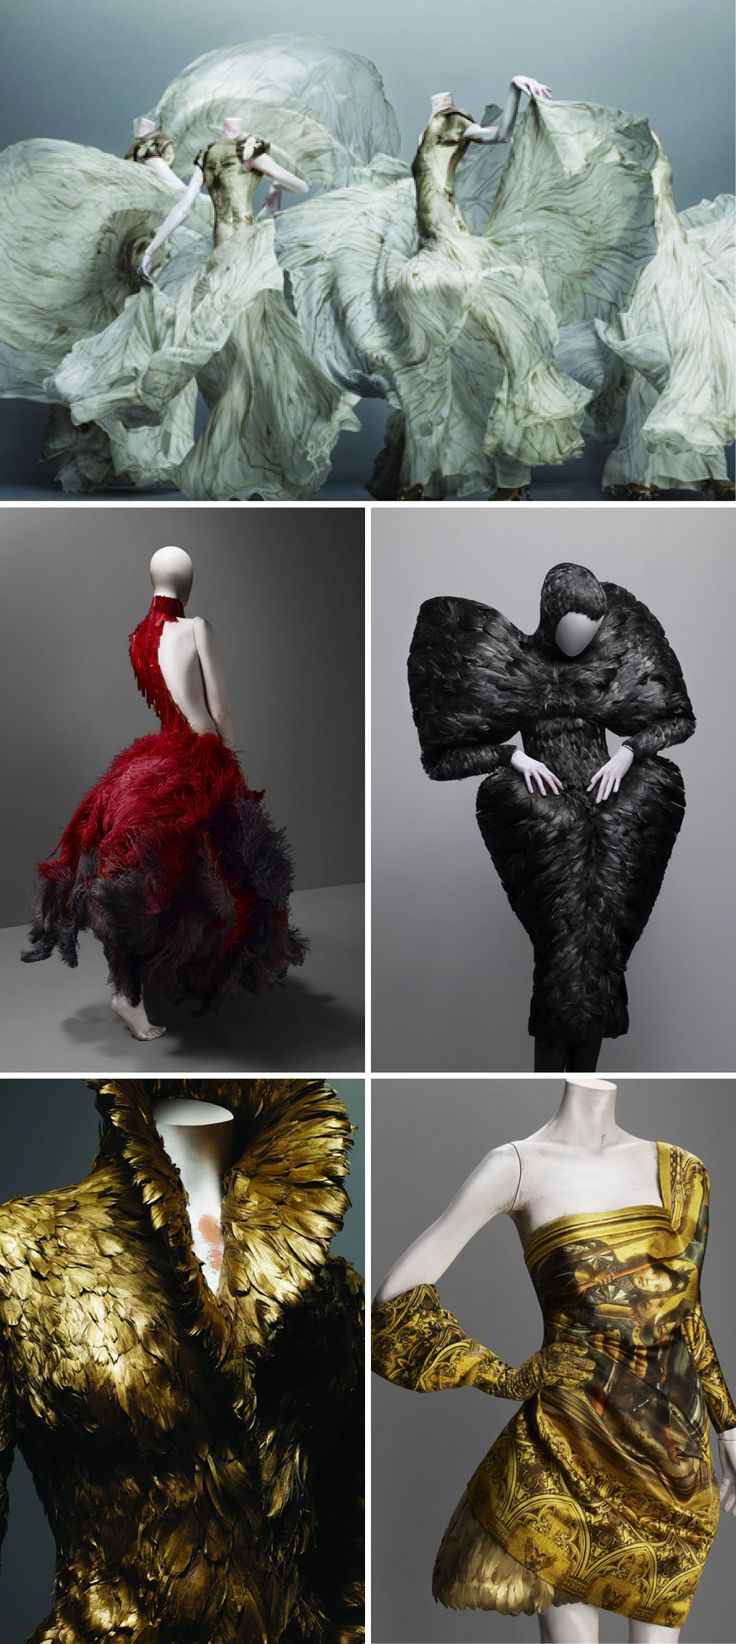 My most recent acquisition, Alexander McQueen: Savage Beauty is an amazing book. The clothes are stunning and the ideas are endless.